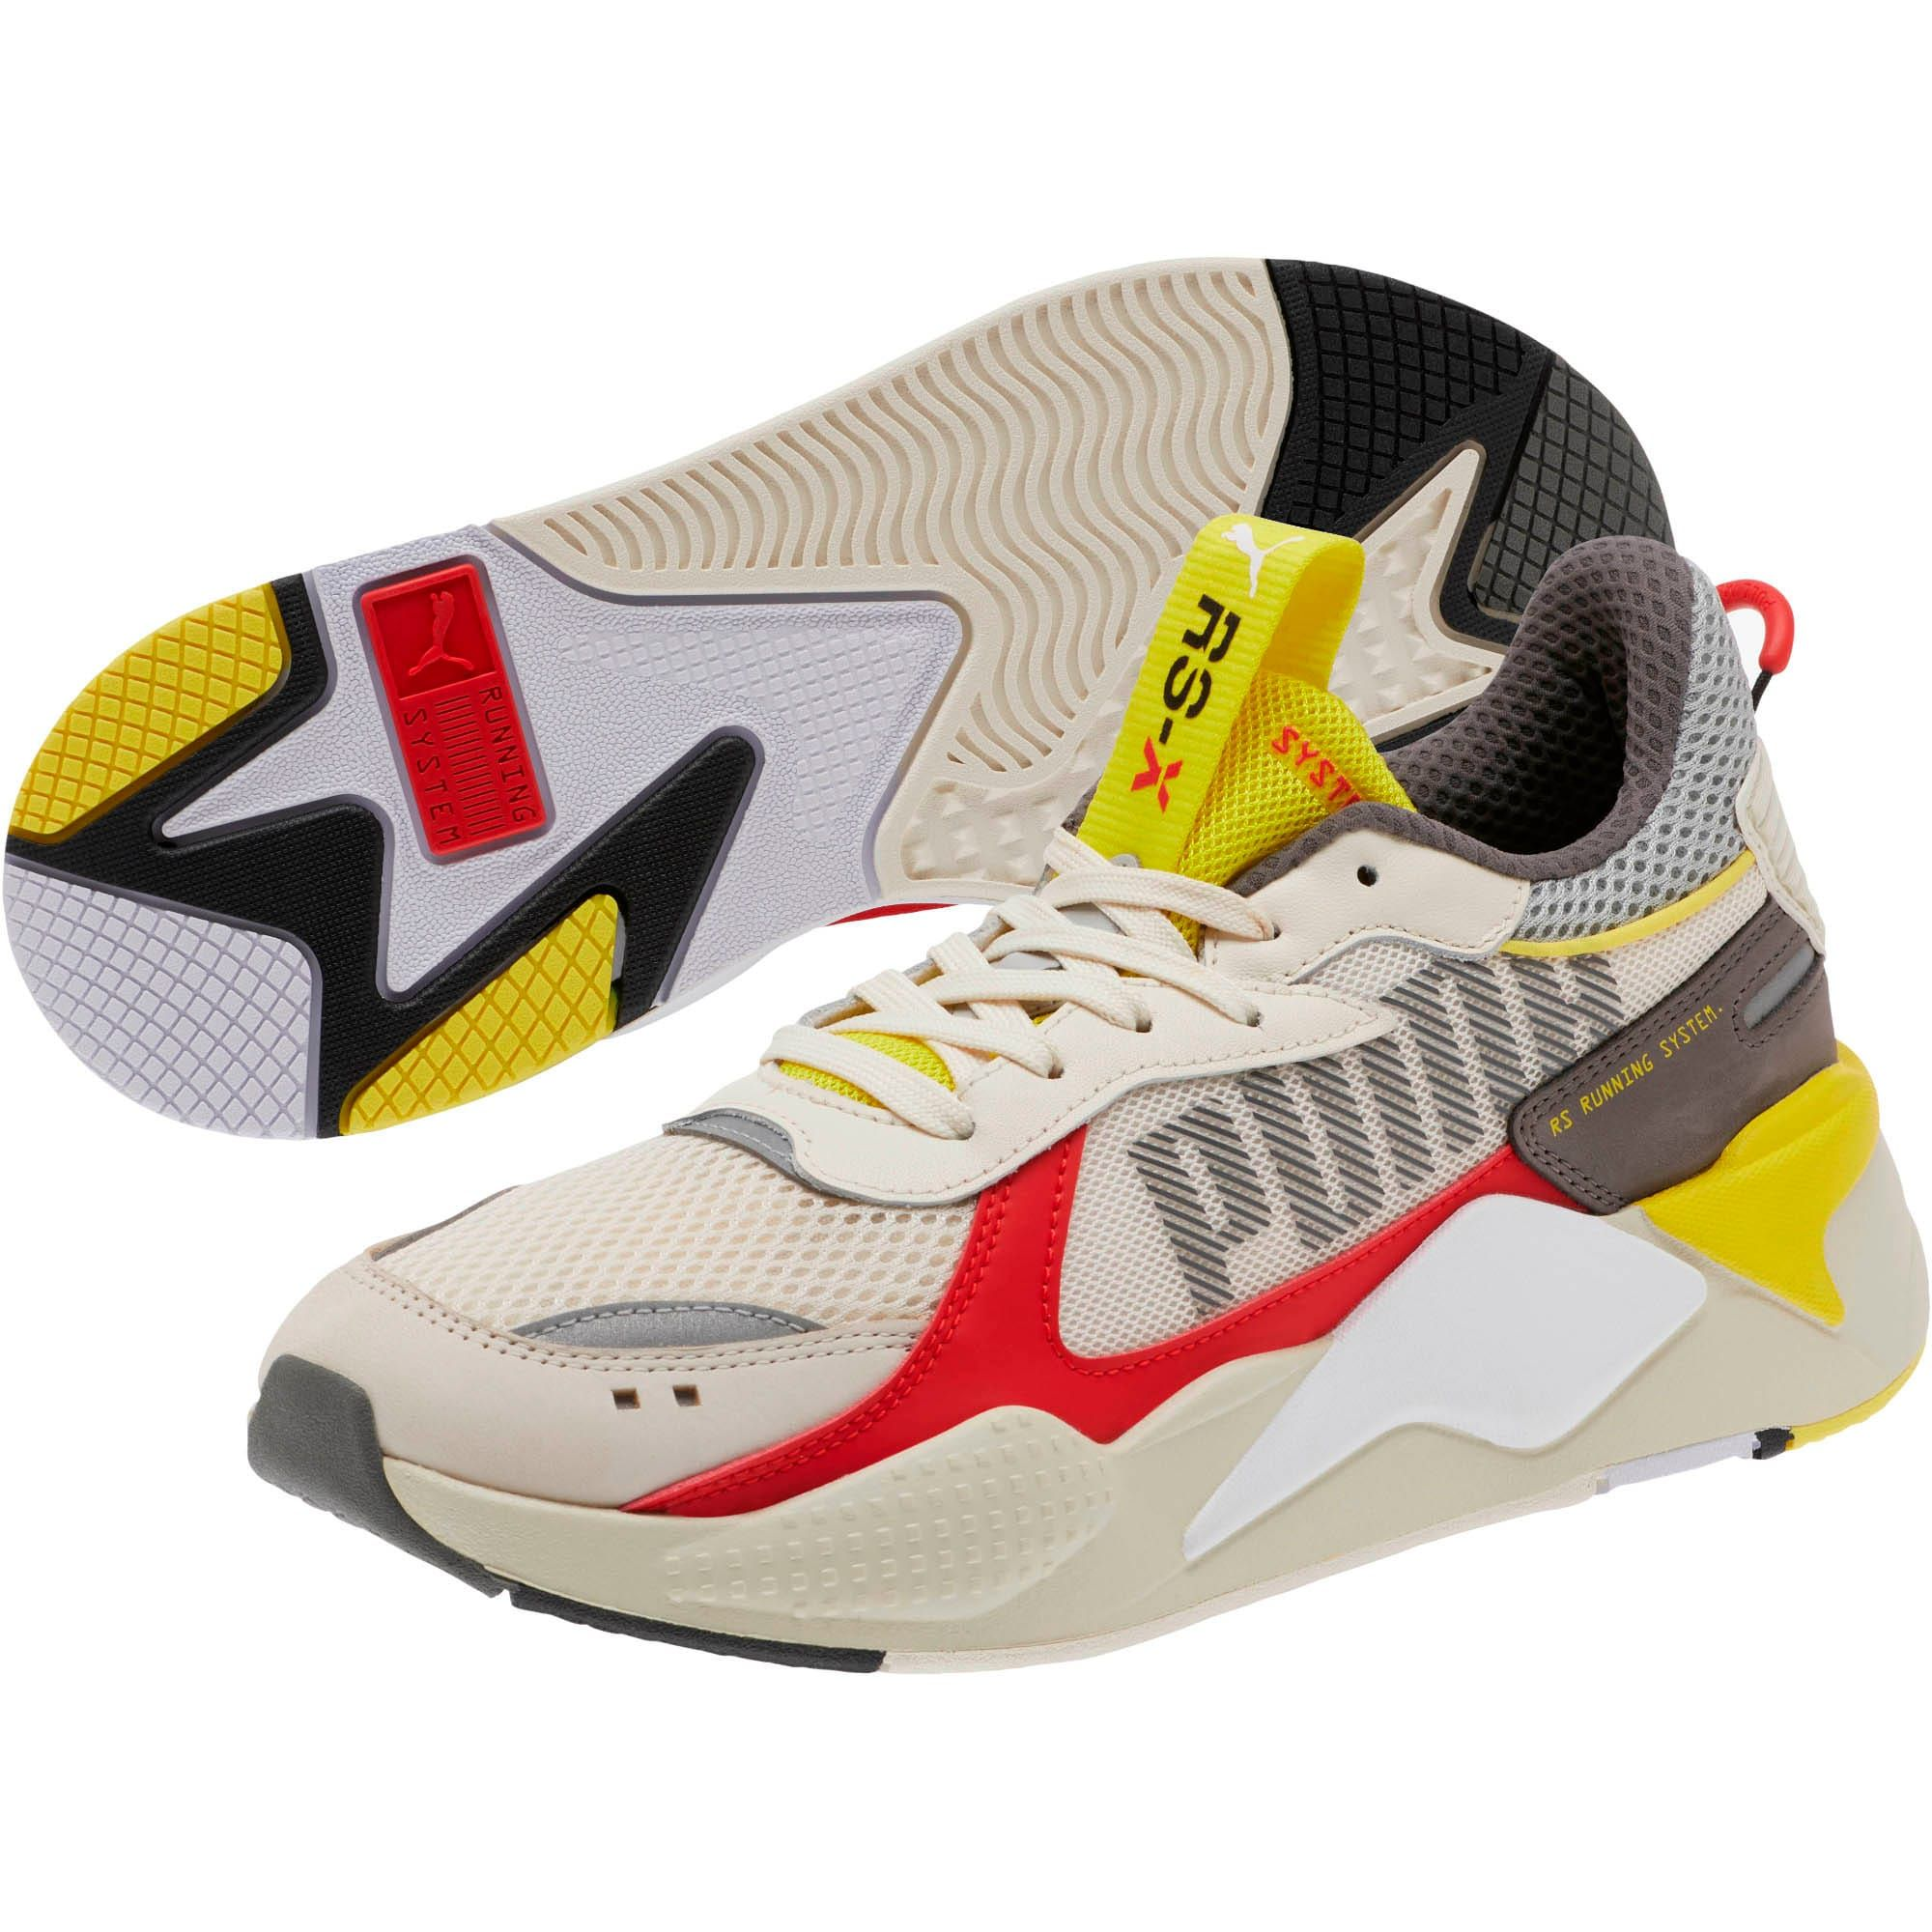 PUMA RsX Bold Trainers in Whisper White/High Risk Red